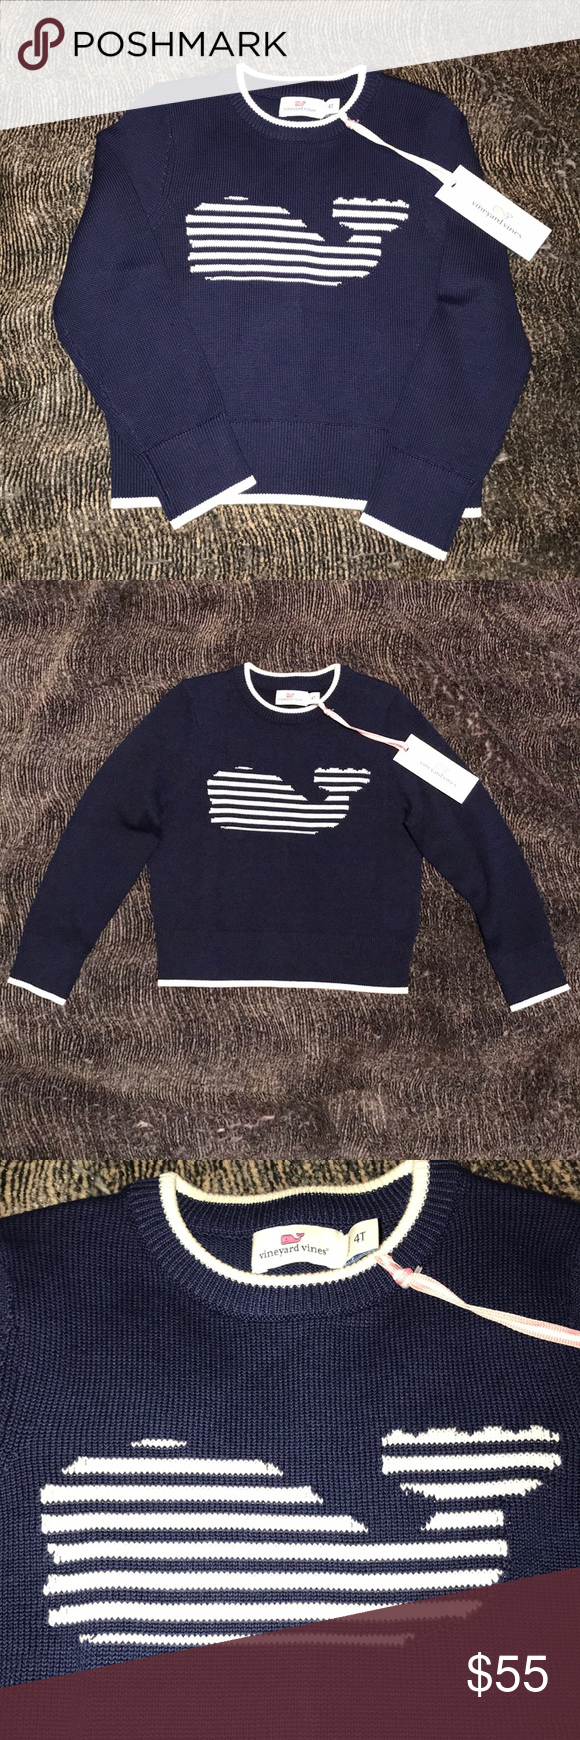 5d532a6c6 Vineyard Vines Whale Sweater NWT Brand New with tags Vineyard Vines ...